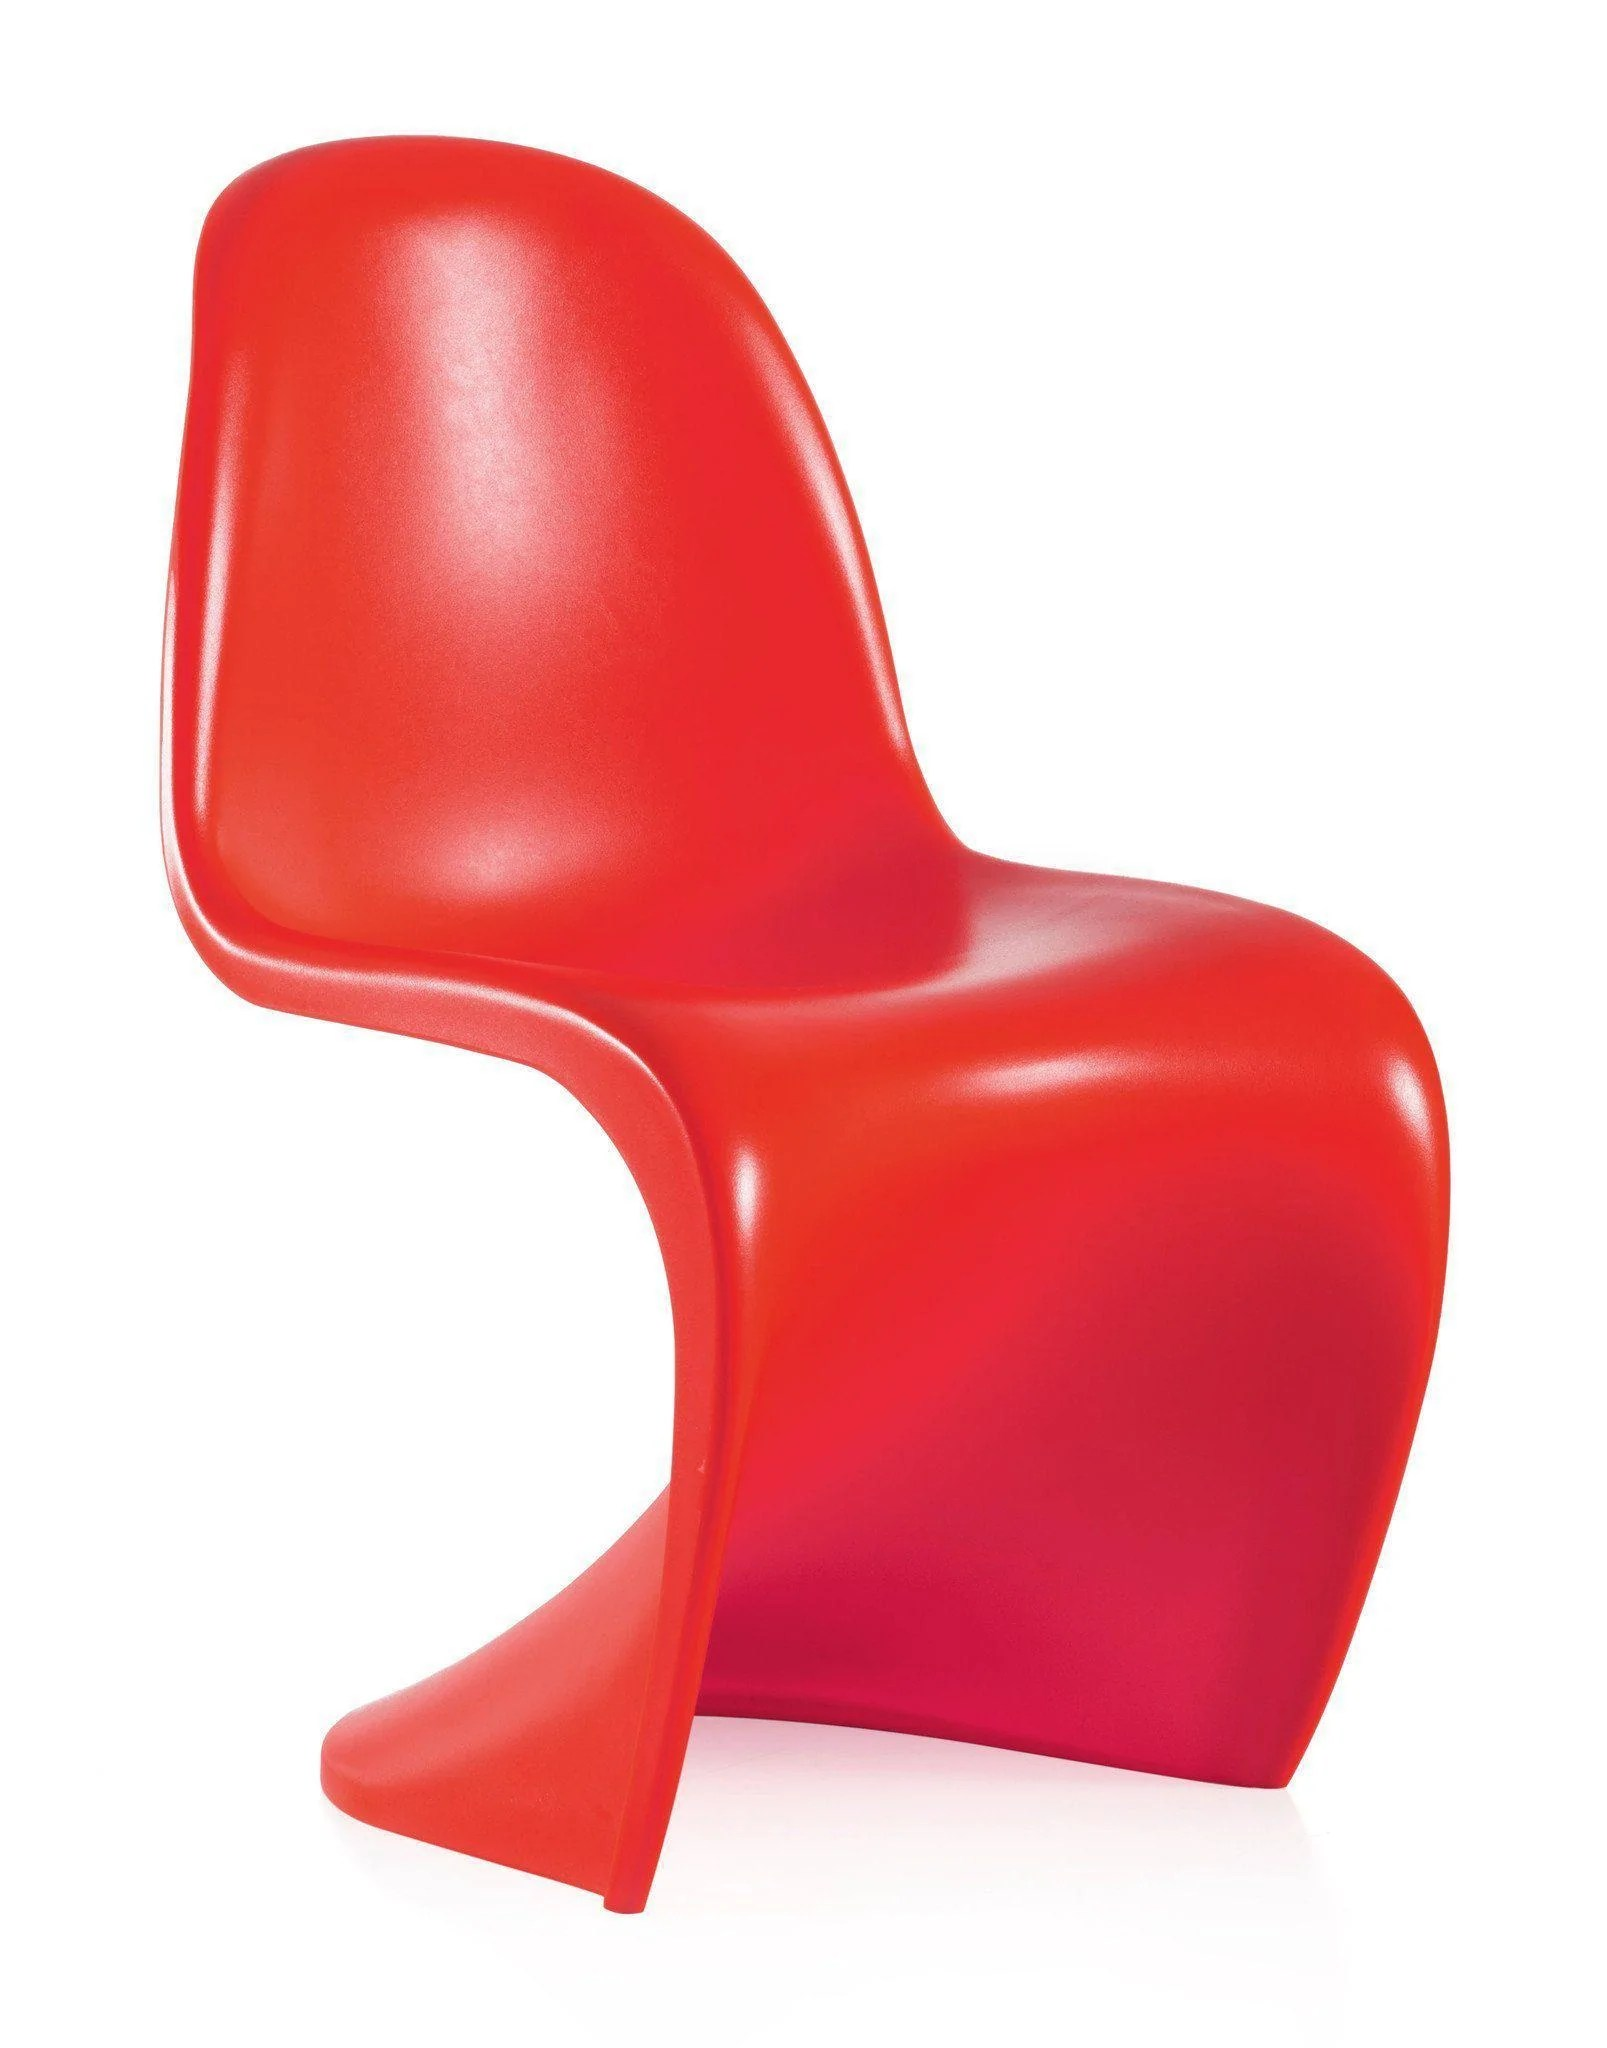 Panton Chairs Verner Panton Chair Replica Esque